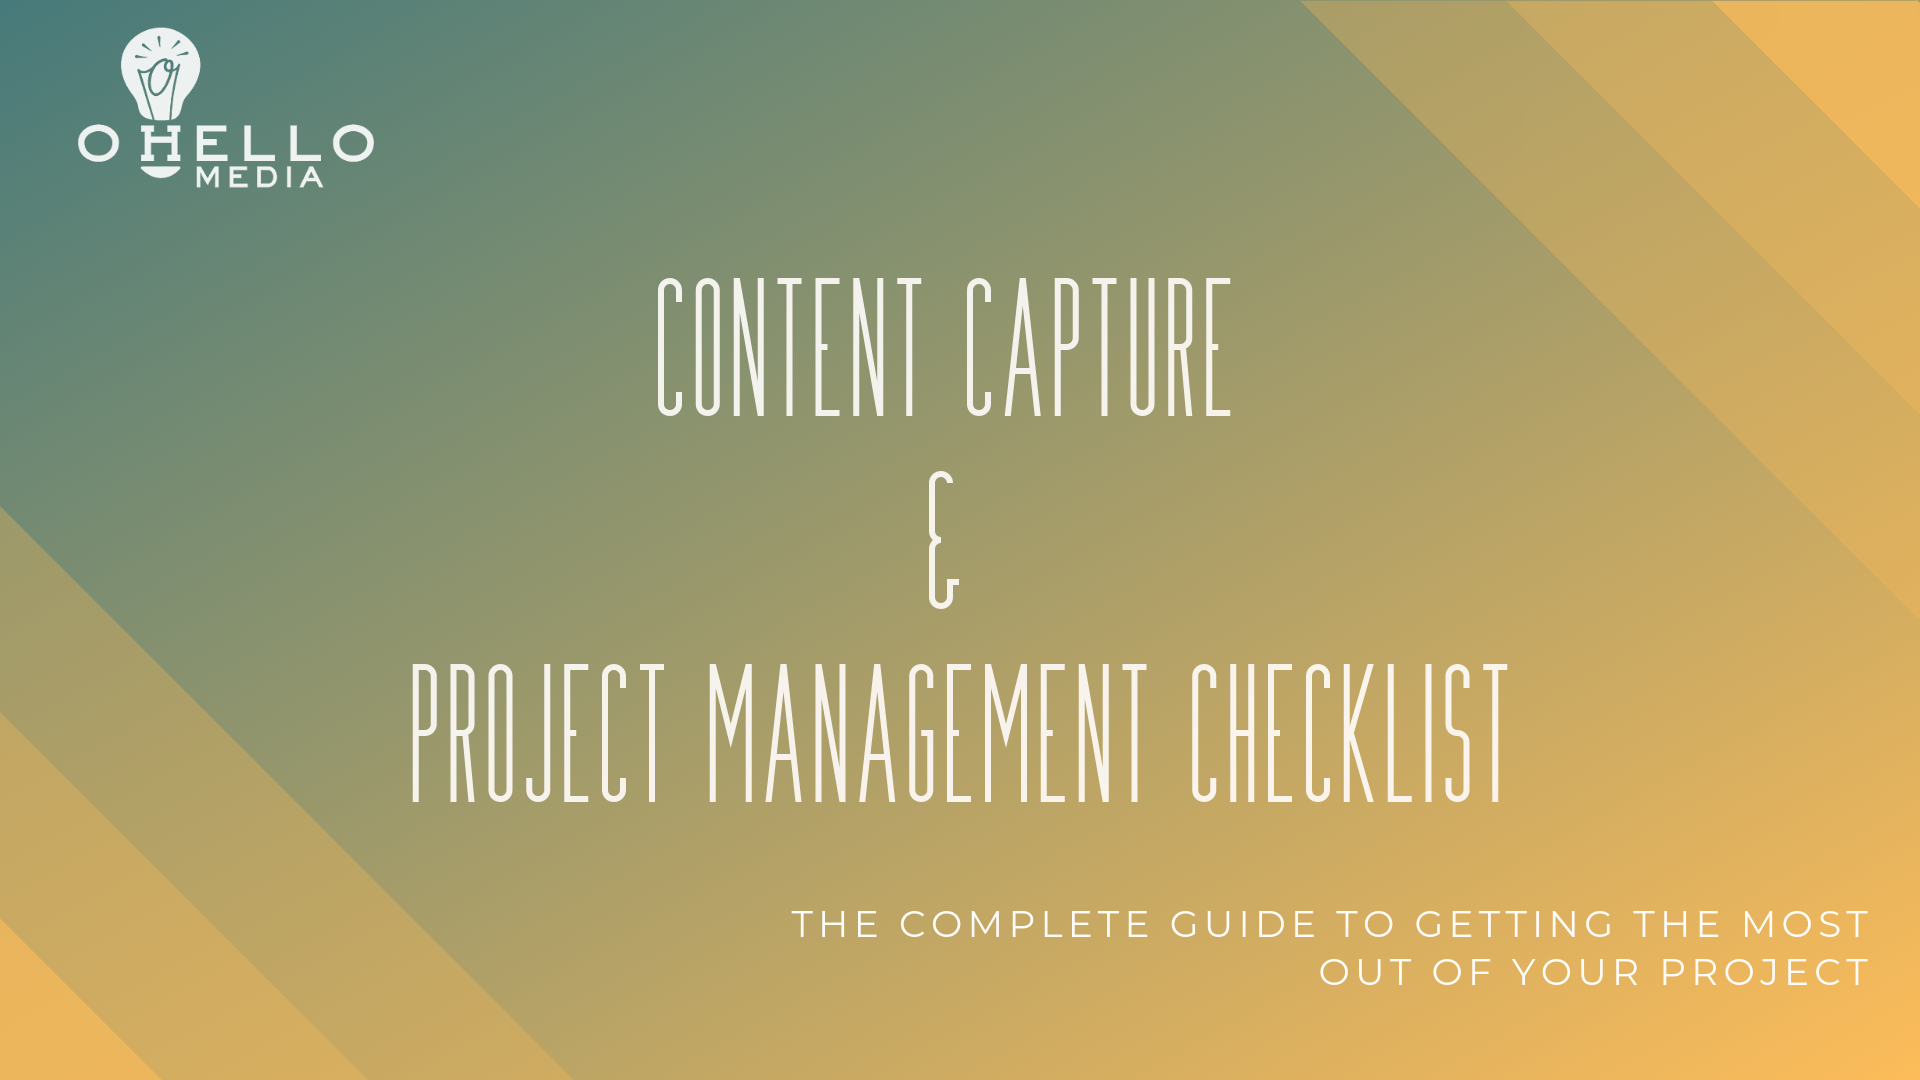 O Hello Media's Project Management Process Guide (3).png